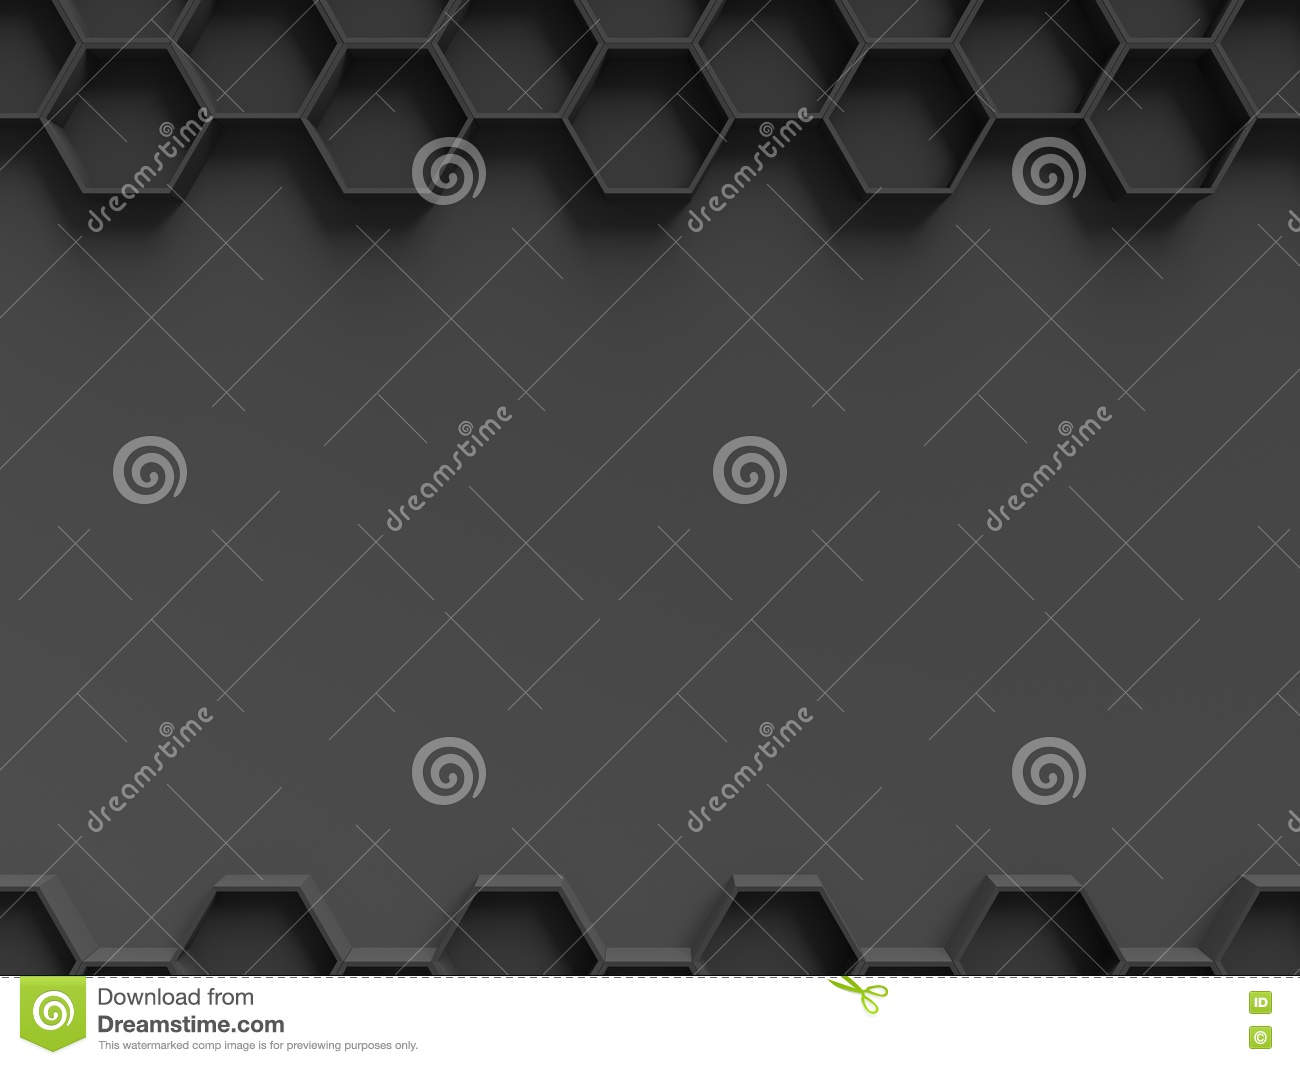 black hexagon pattern with dark background template for presentation